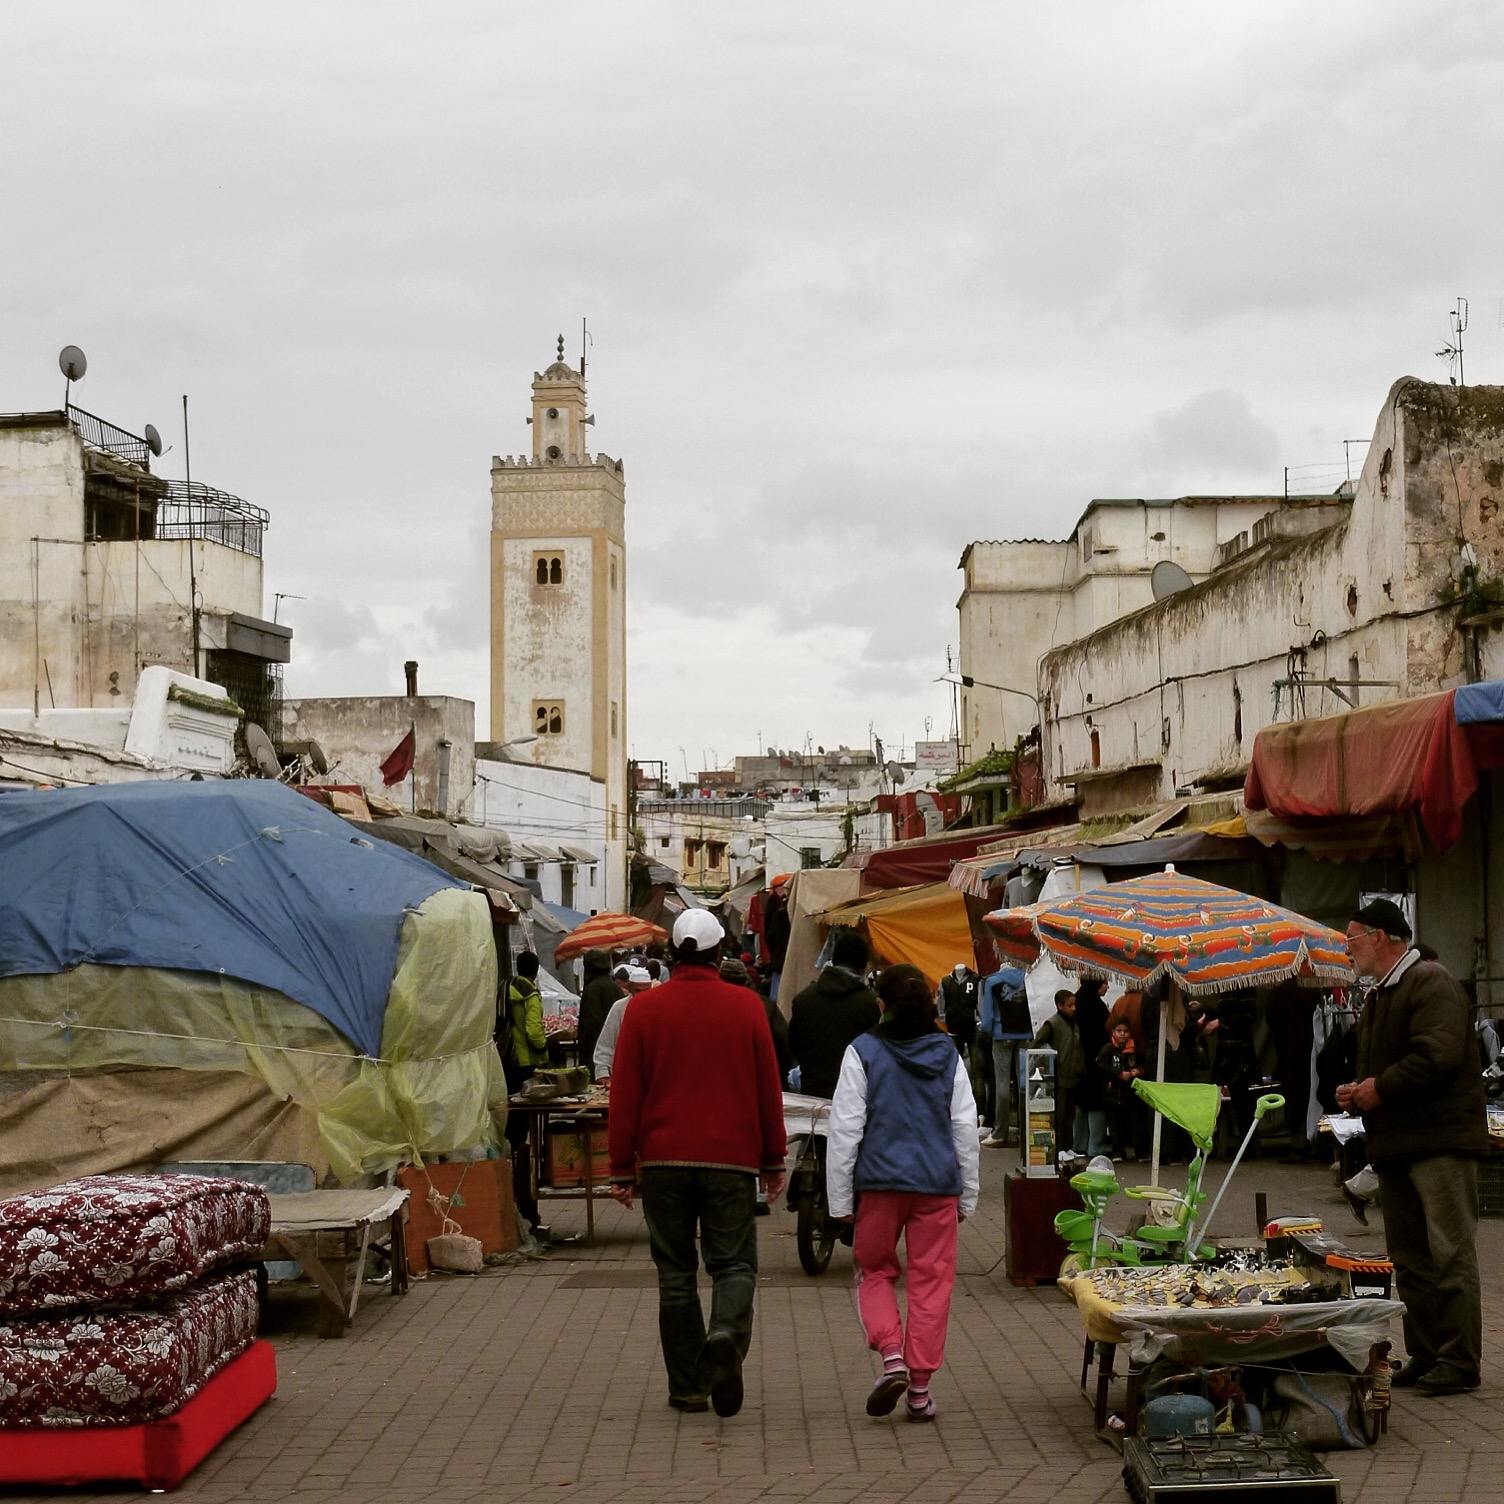 Shopping in Rabat on a cloudy January day